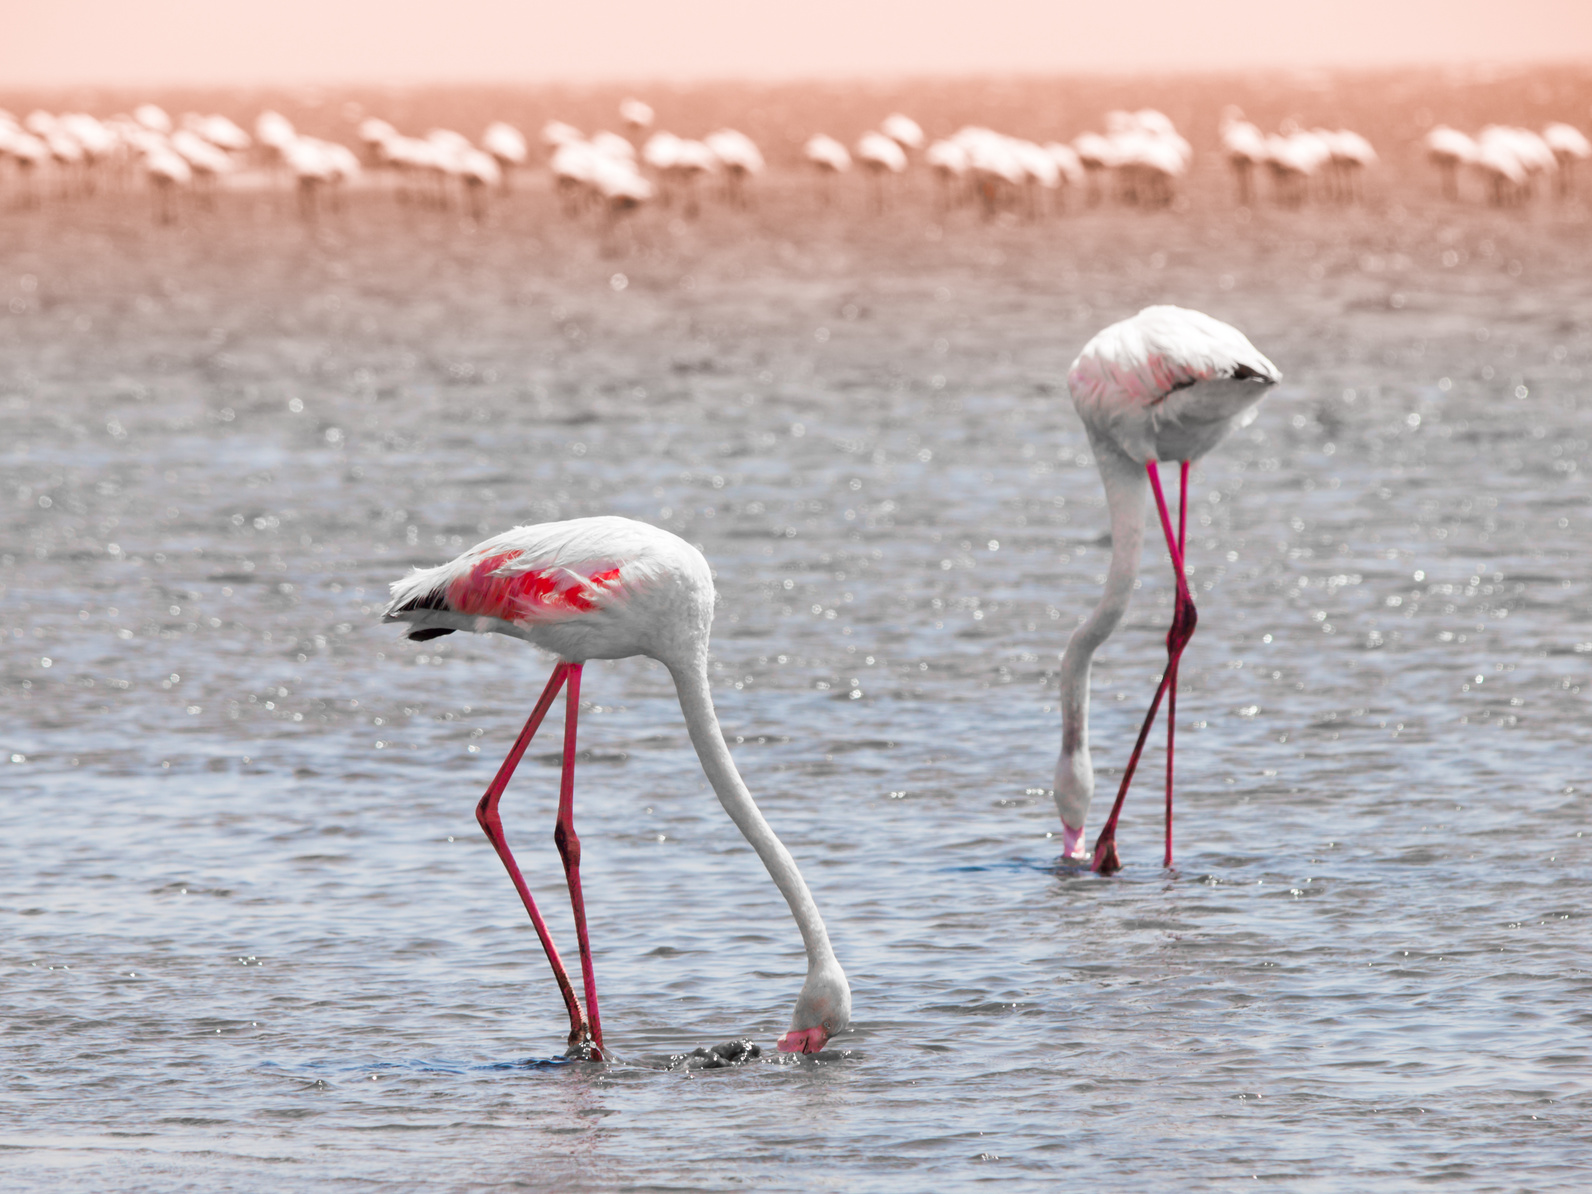 walvis_bay_flamingos_100615763_Subscription_Monthly_M.jpg